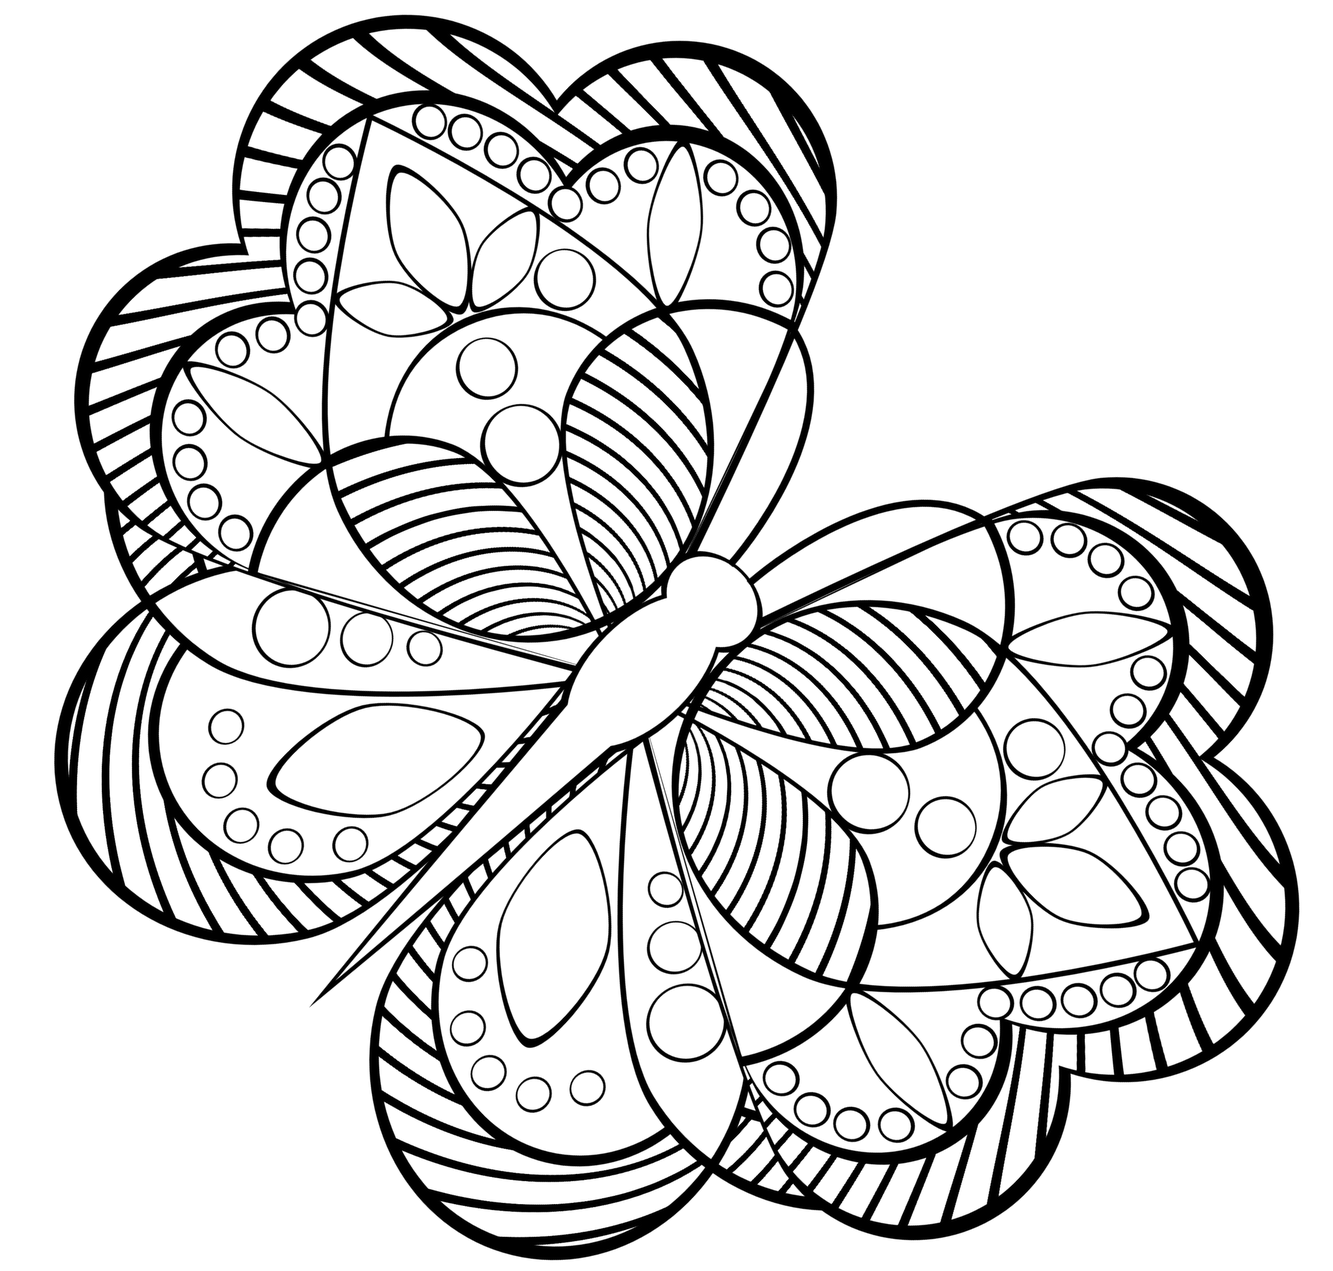 coloring pages to color online free online coloring pages for adults creatively crafting online to coloring color pages